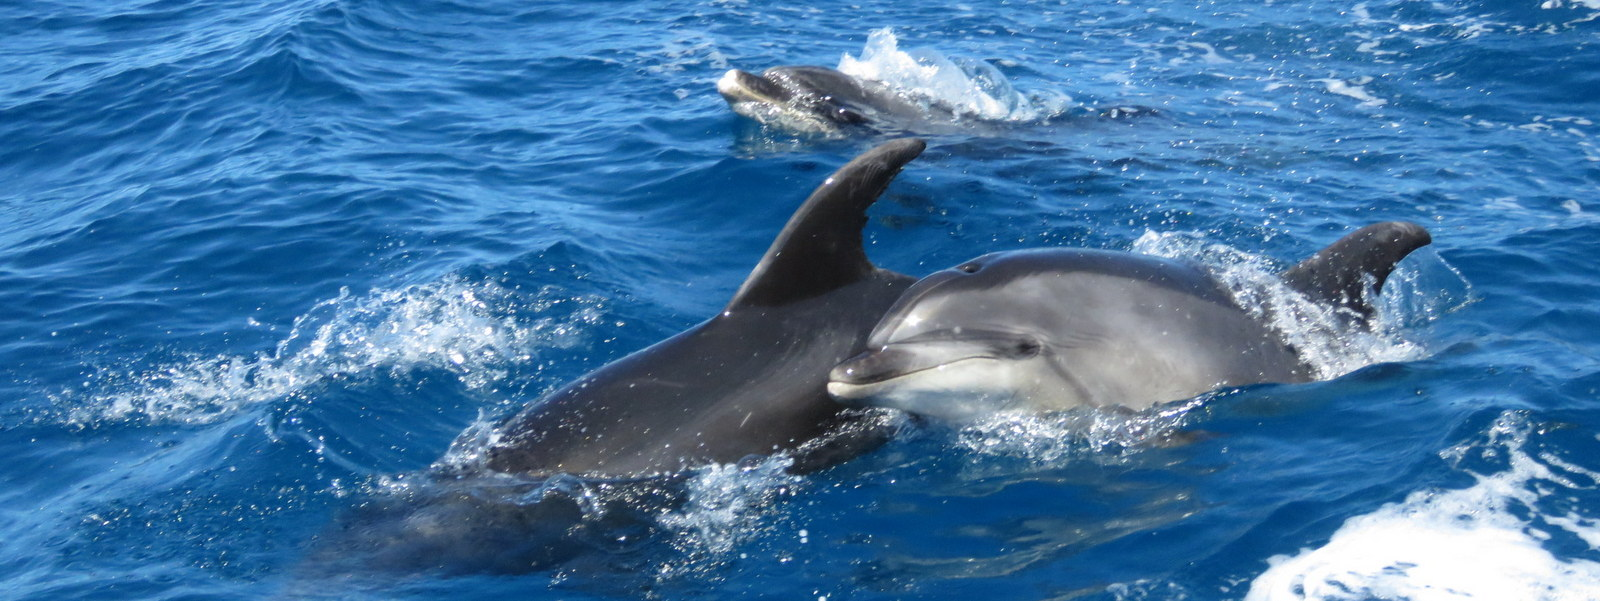 Dolphins are often seen in the park, viewing them in their natural environment is a memorable highlight.